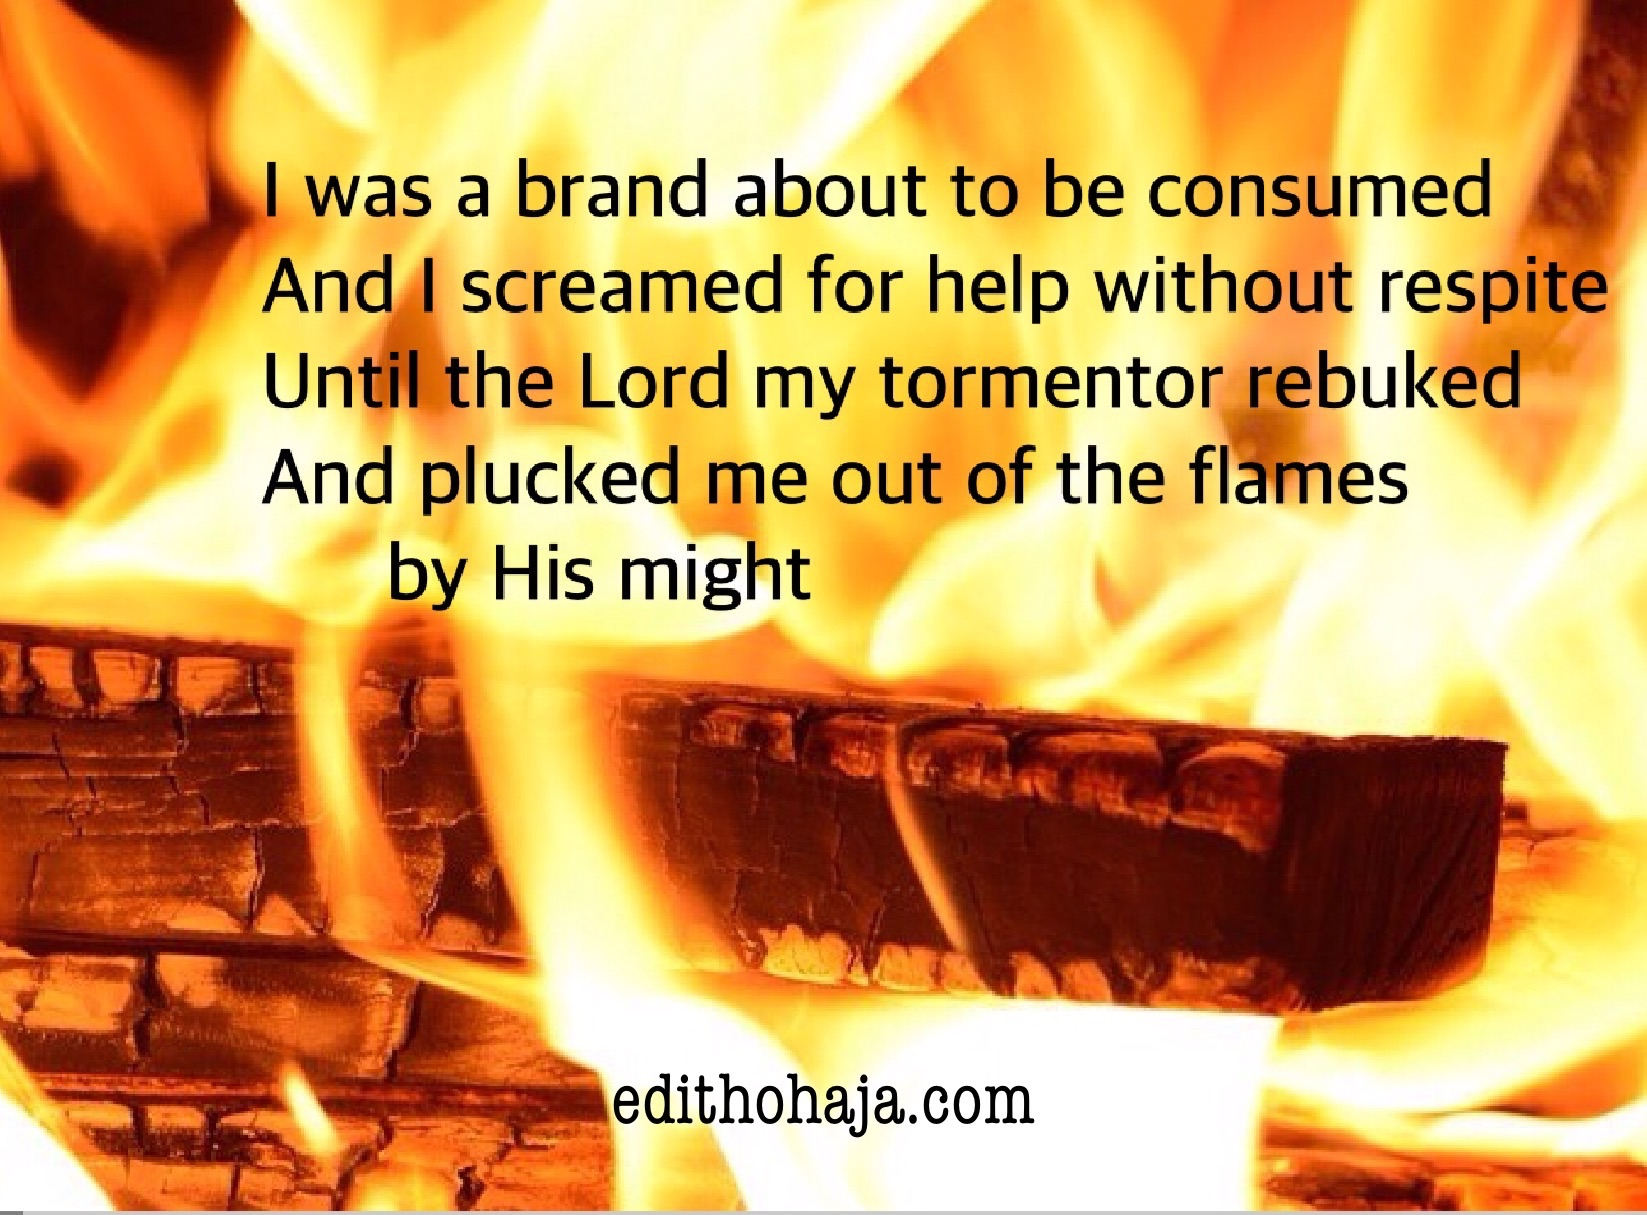 A BRAND SNATCHED FROM THE FIRE (POEM)